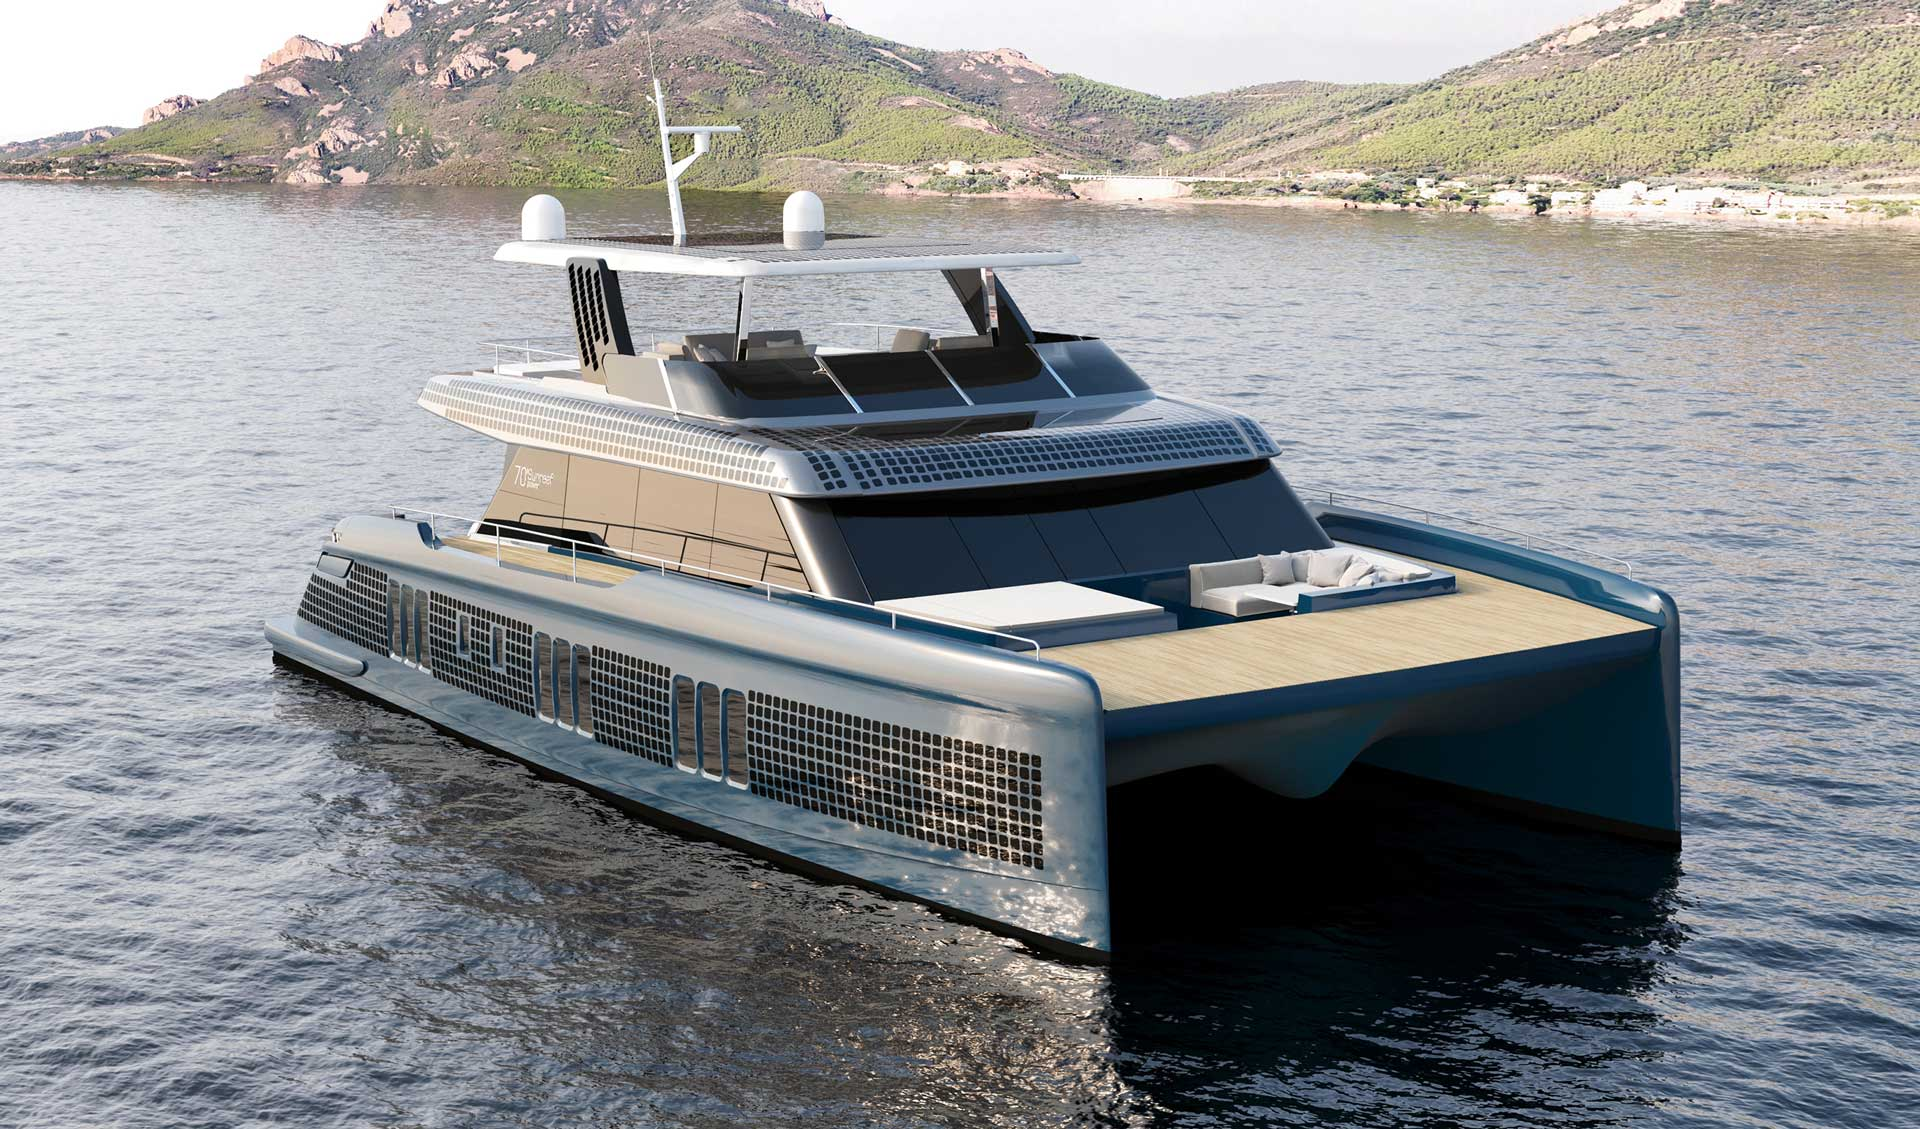 Sunreef power eco electric catamarans